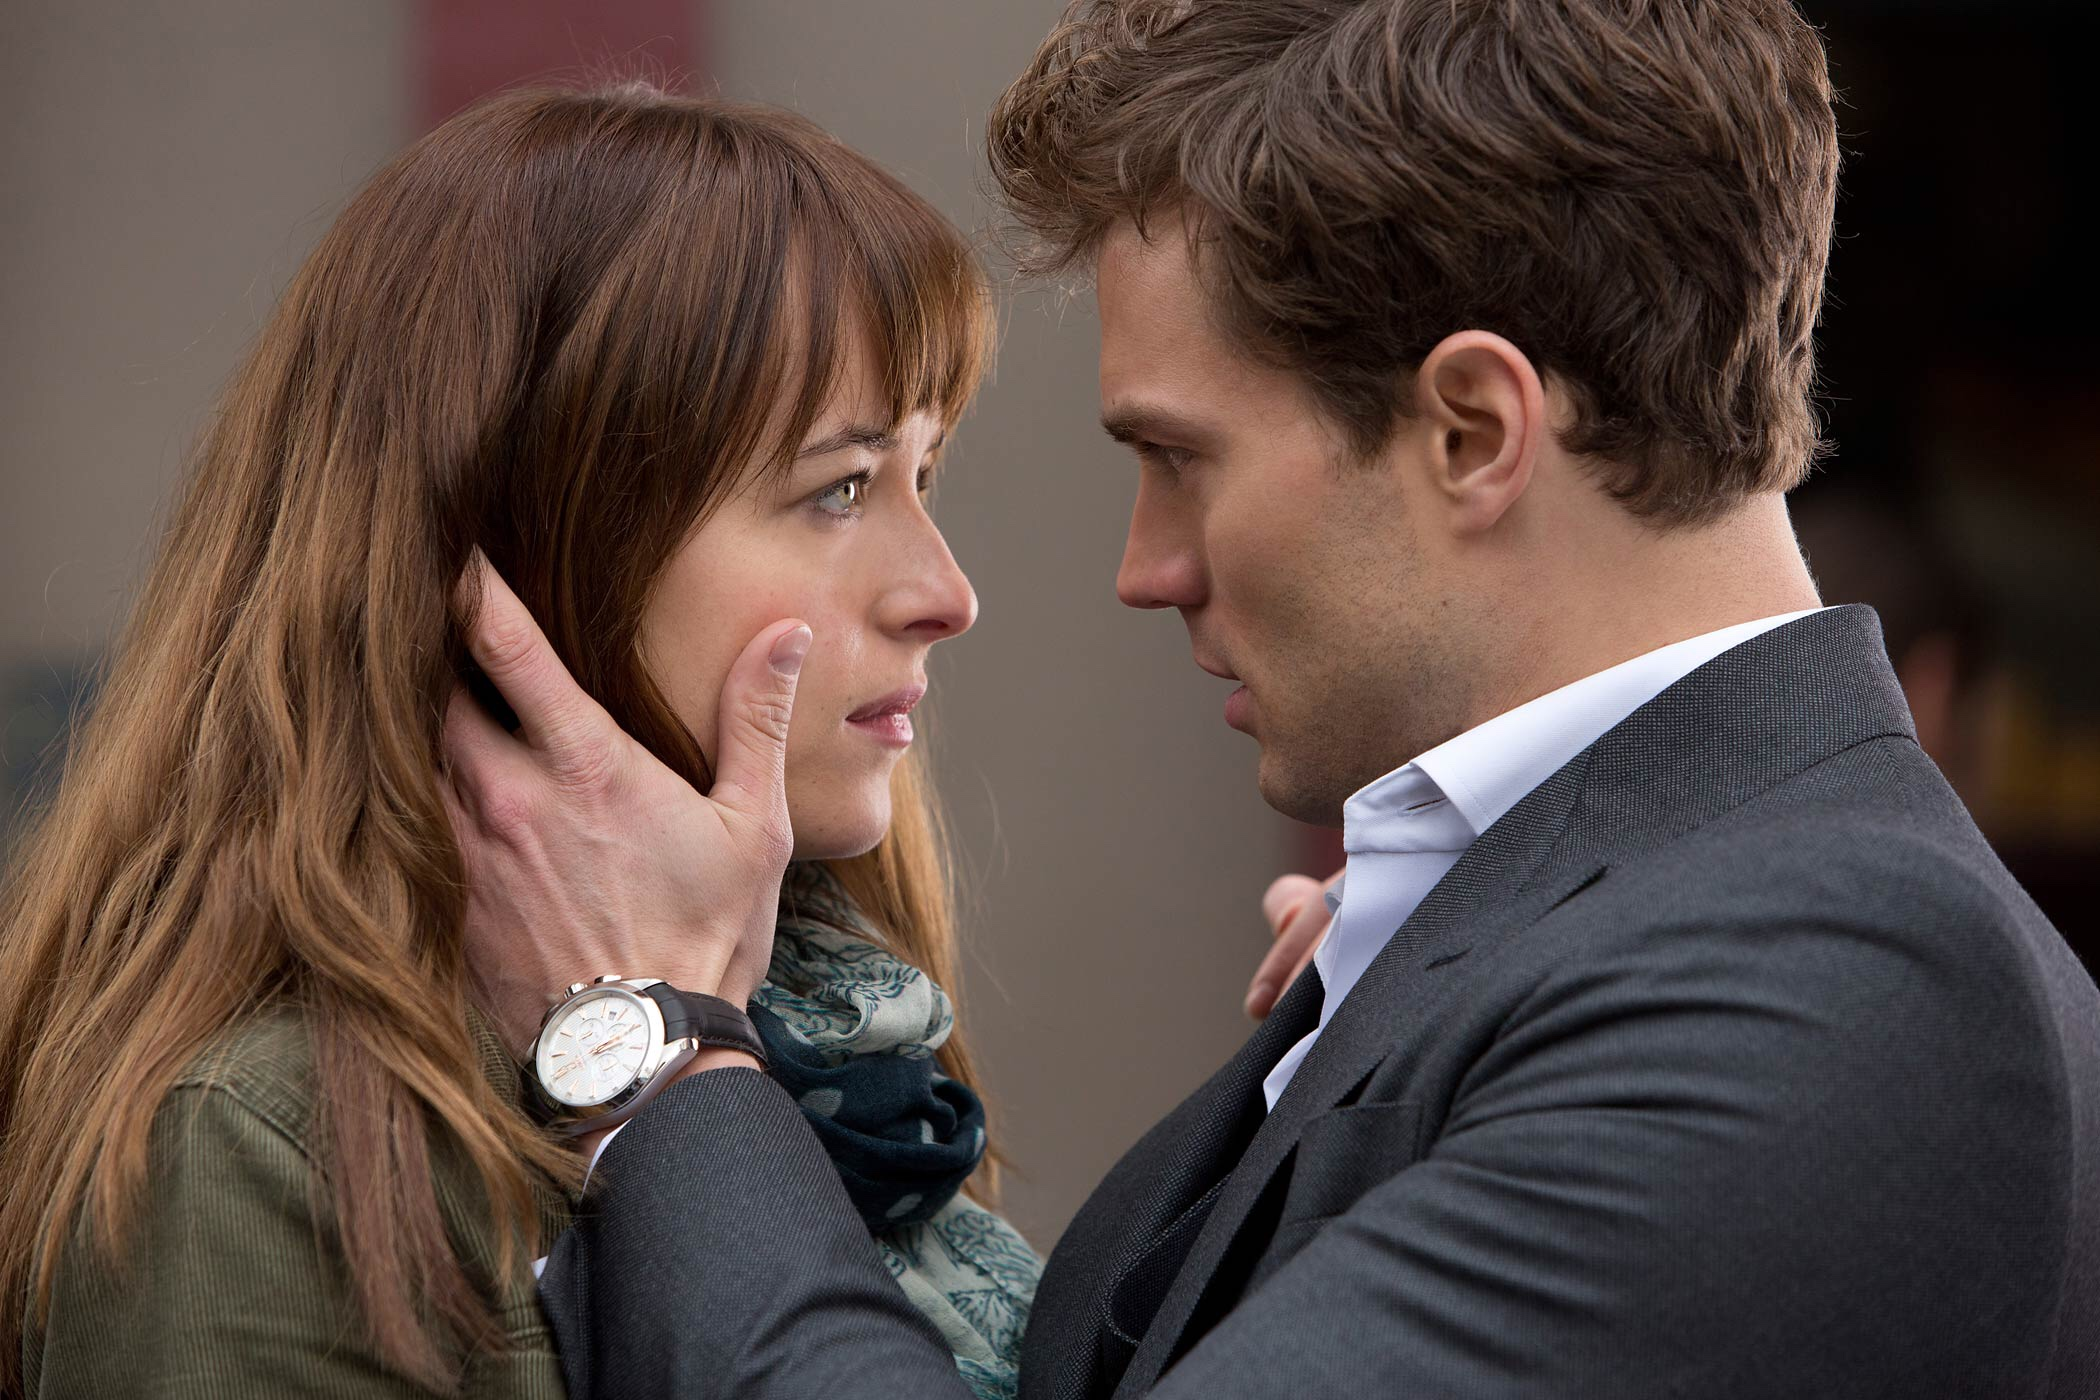 Christian is facing Ana and holding her face in his hands